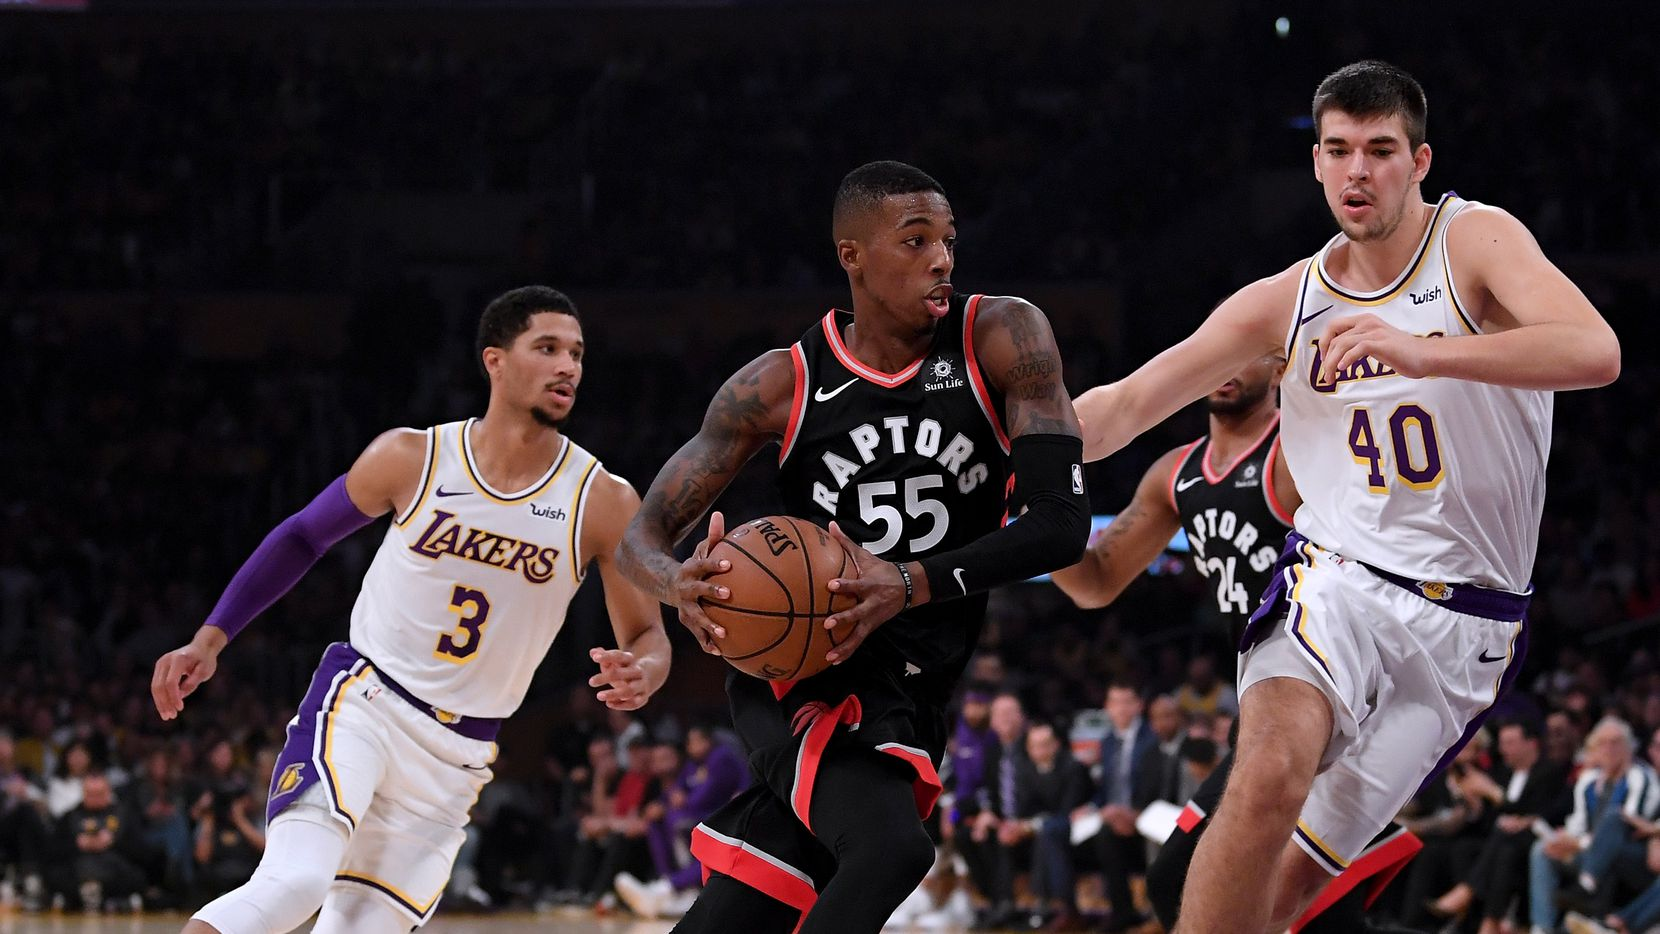 LOS ANGELES, CA - NOVEMBER 04:  Delon Wright #55 of the Toronto Raptors drives to the basket as he is chased by Ivica Zubac #40 and Josh Hart #3 of the Los Angeles Lakers at Staples Center on November 4, 2018 in Los Angeles, California.  (Photo by Harry How/Getty Images)